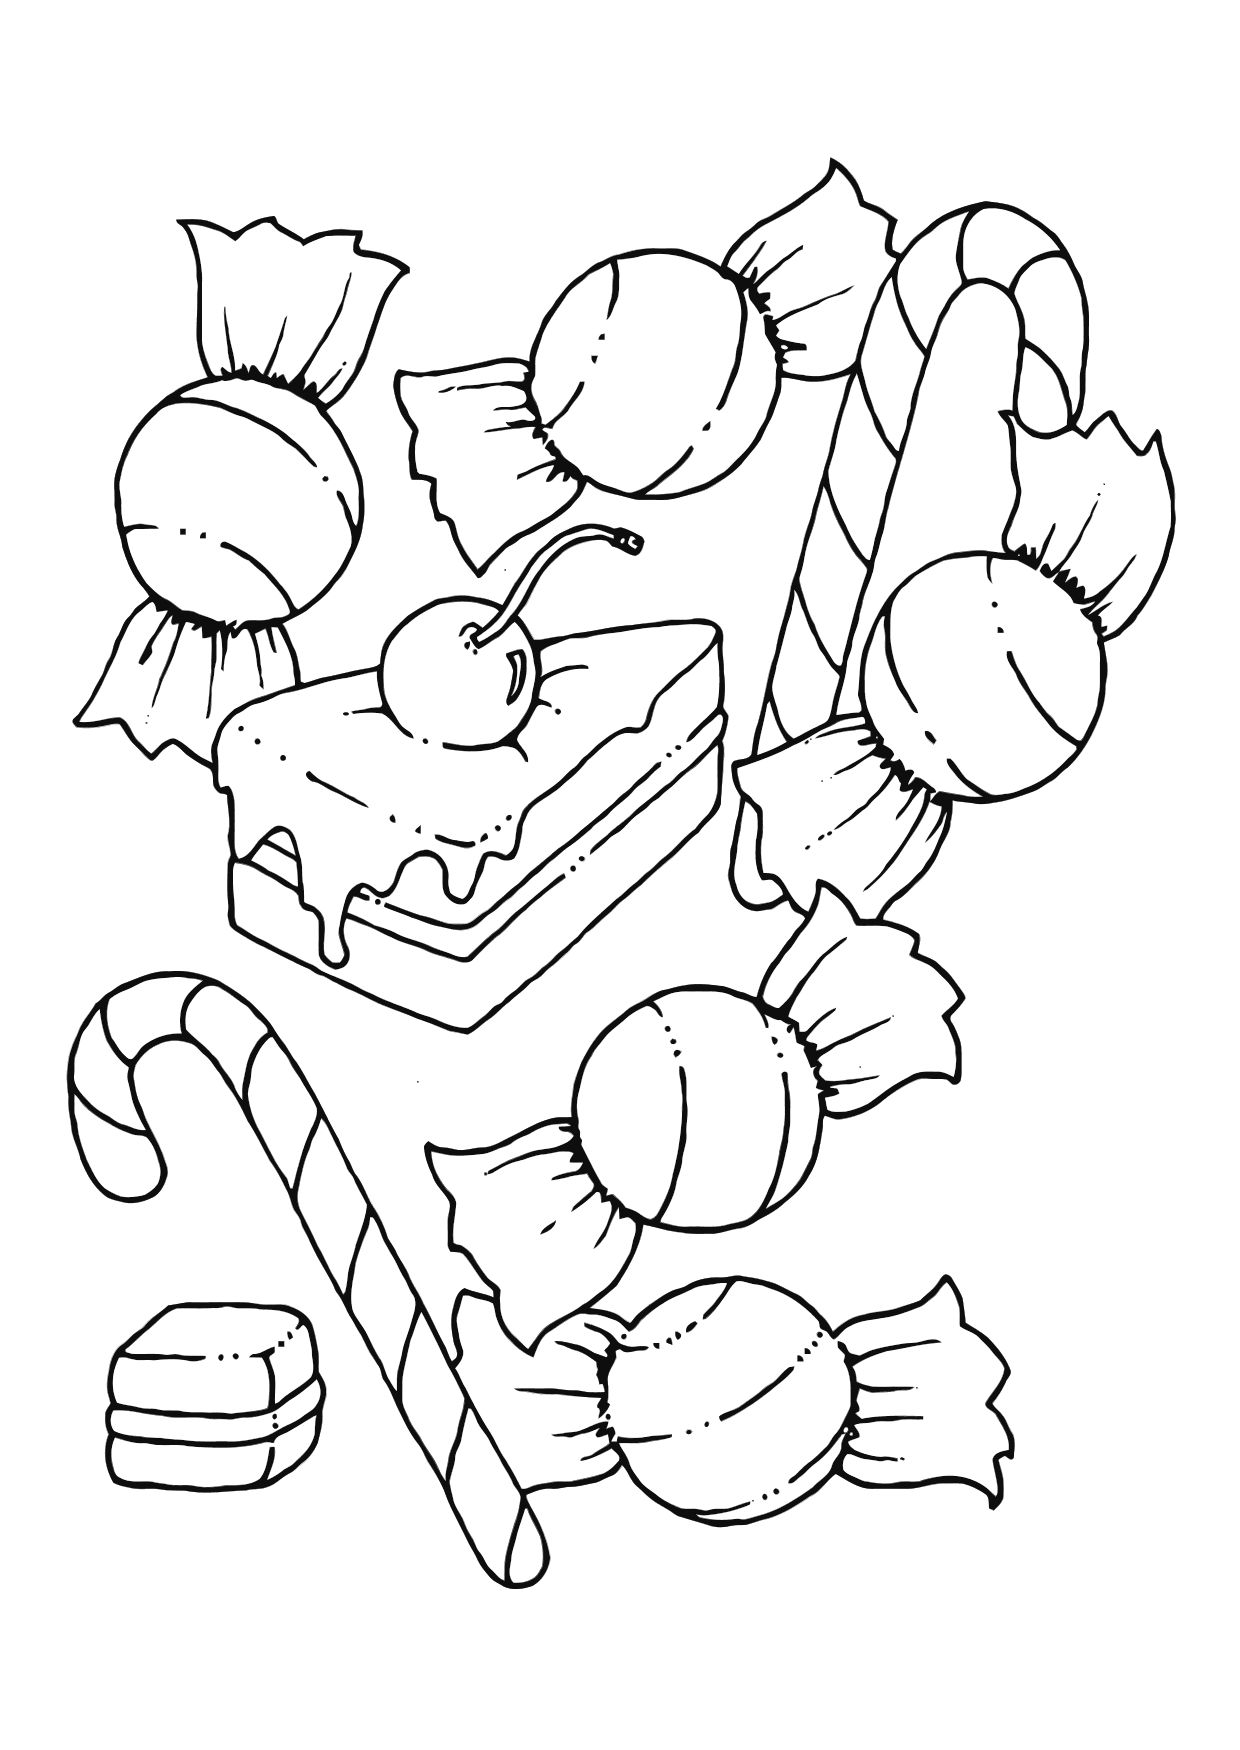 Free coloring pages candy snickers - Free Coloring Pages Candy Snickers 13